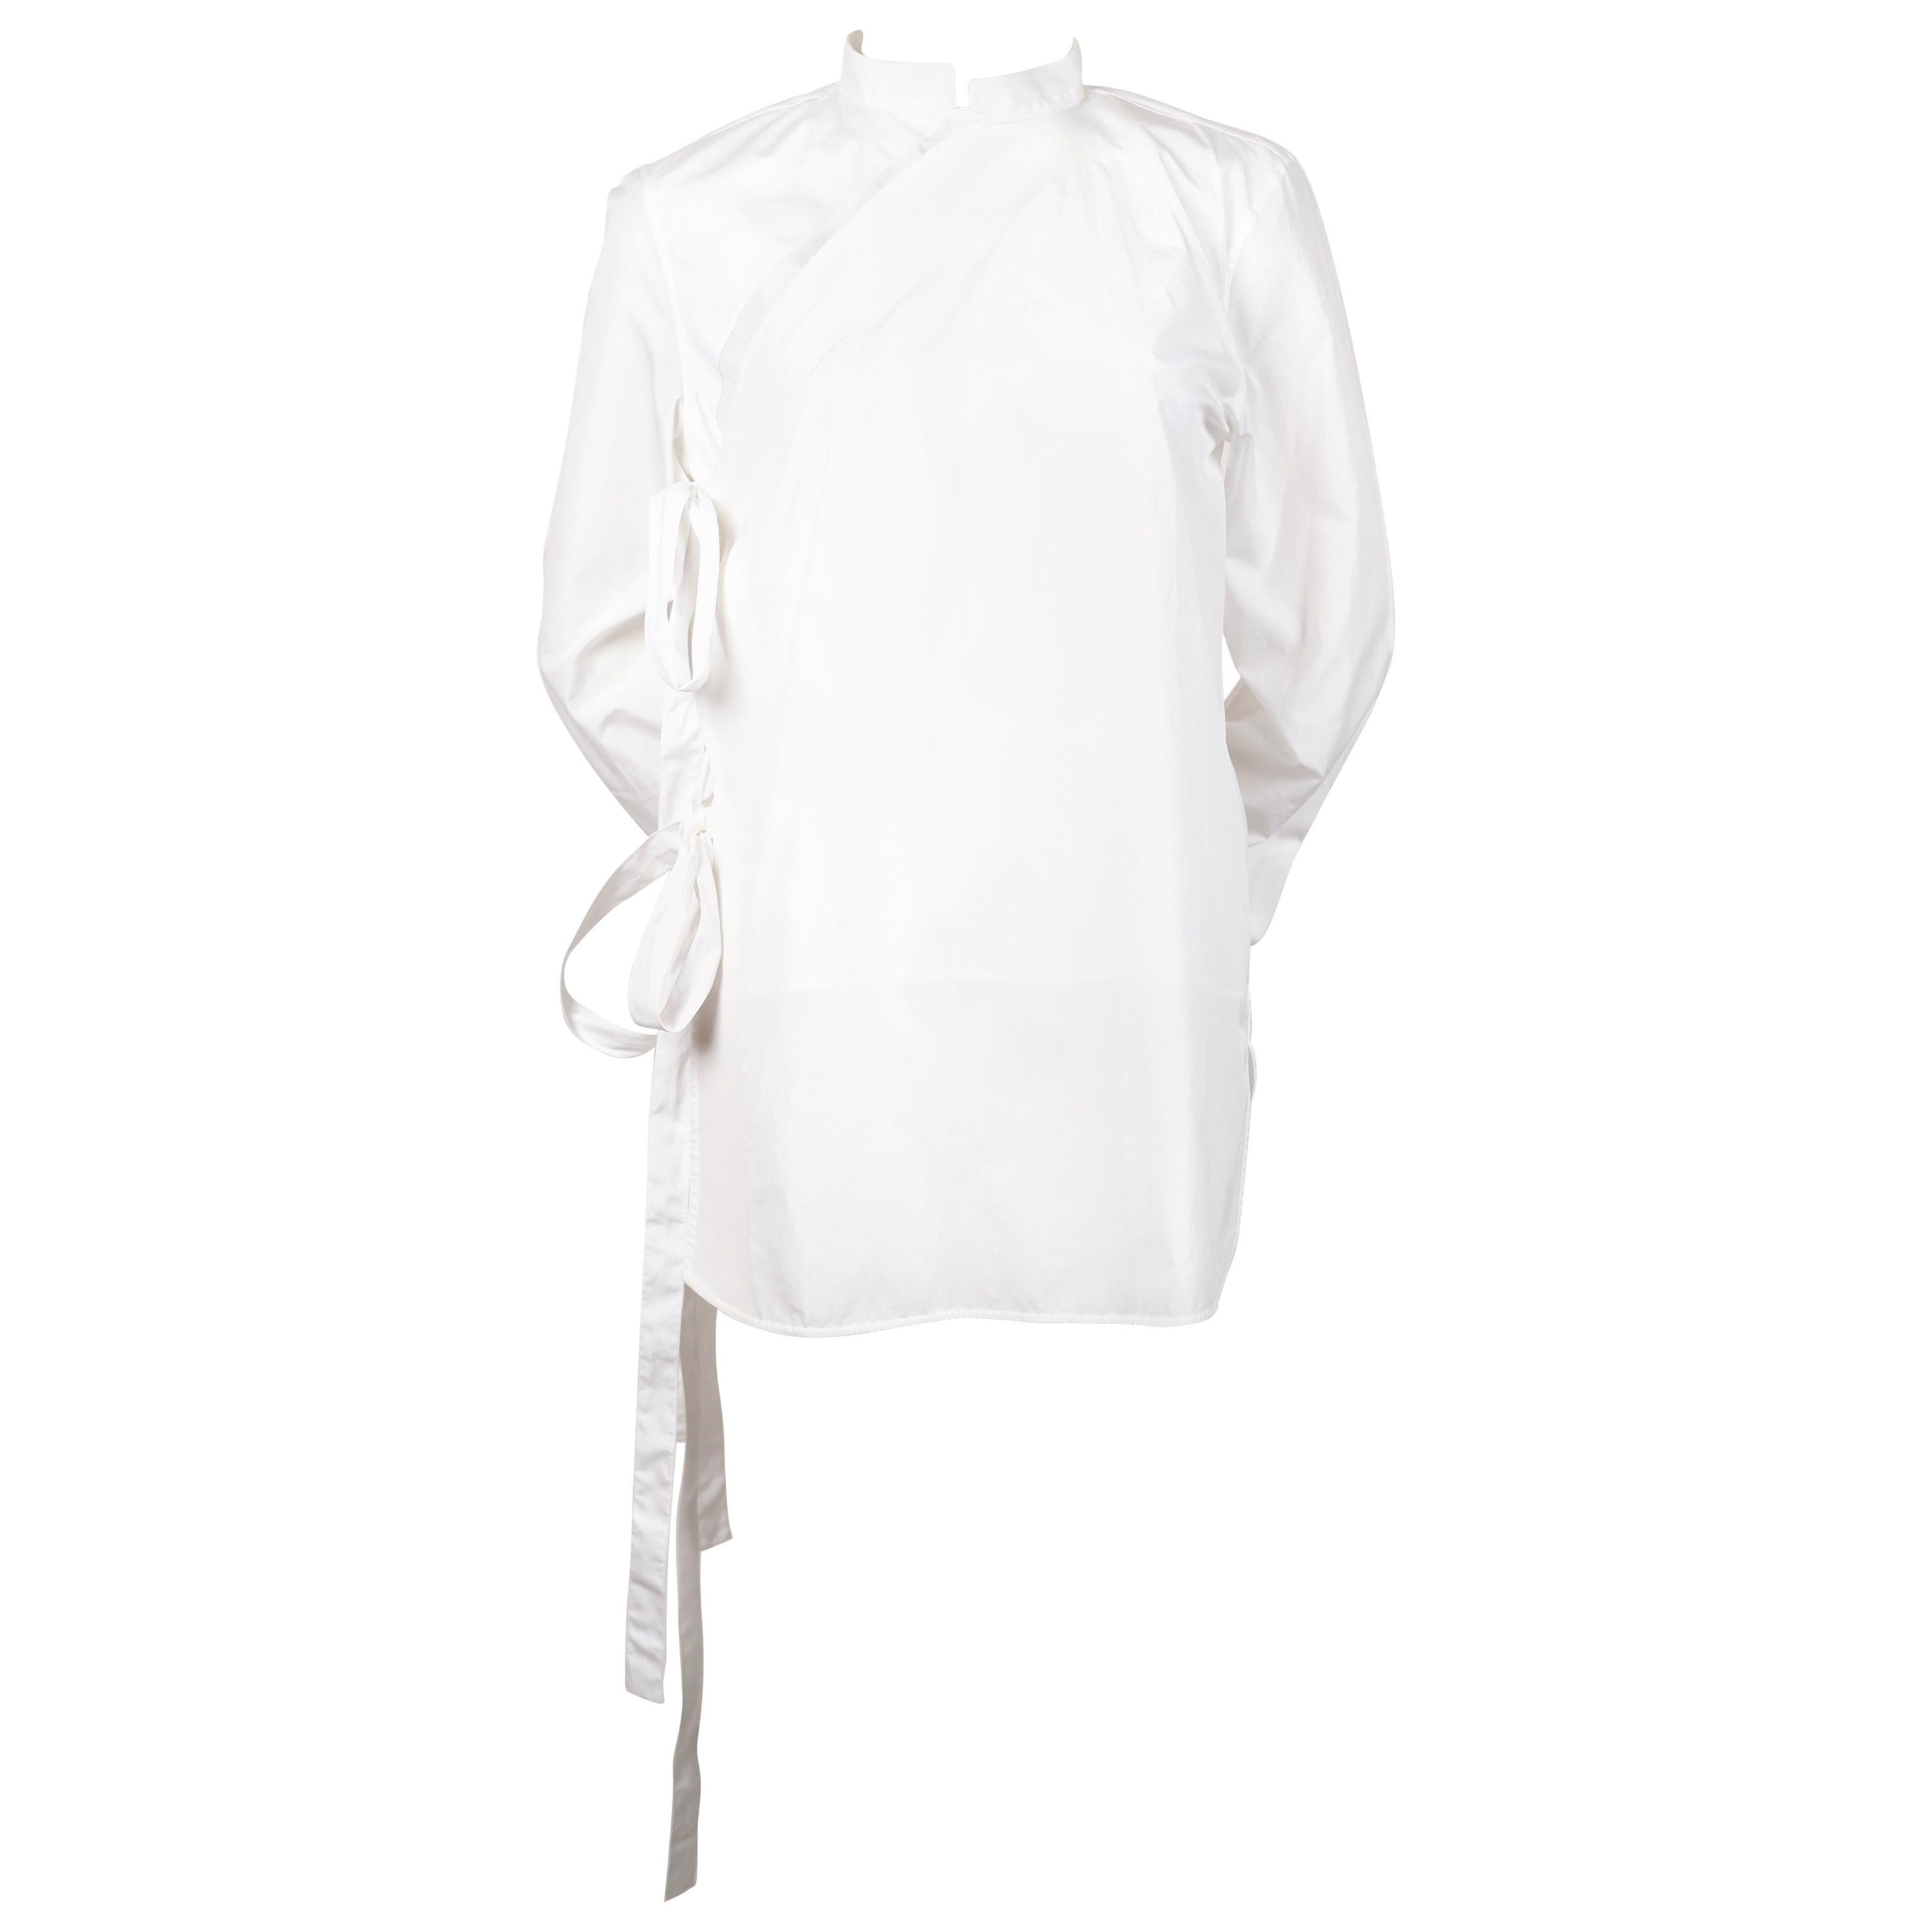 d0a638e72f34 Celine by Phoebe Philo white cotton shirt with ties at 1stdibs